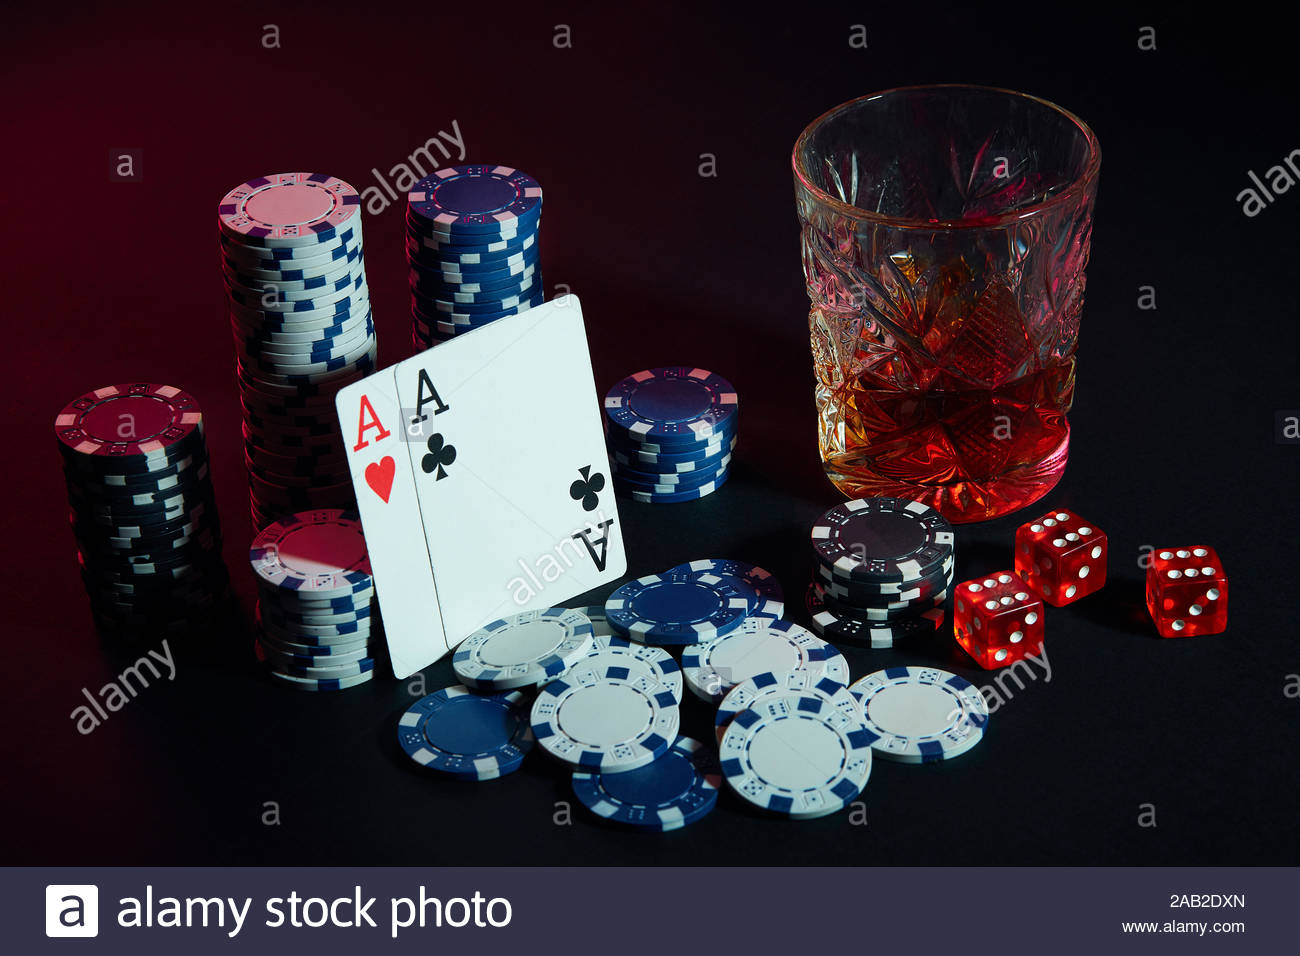 The Best Way To Lose Online Casino In 6 Days